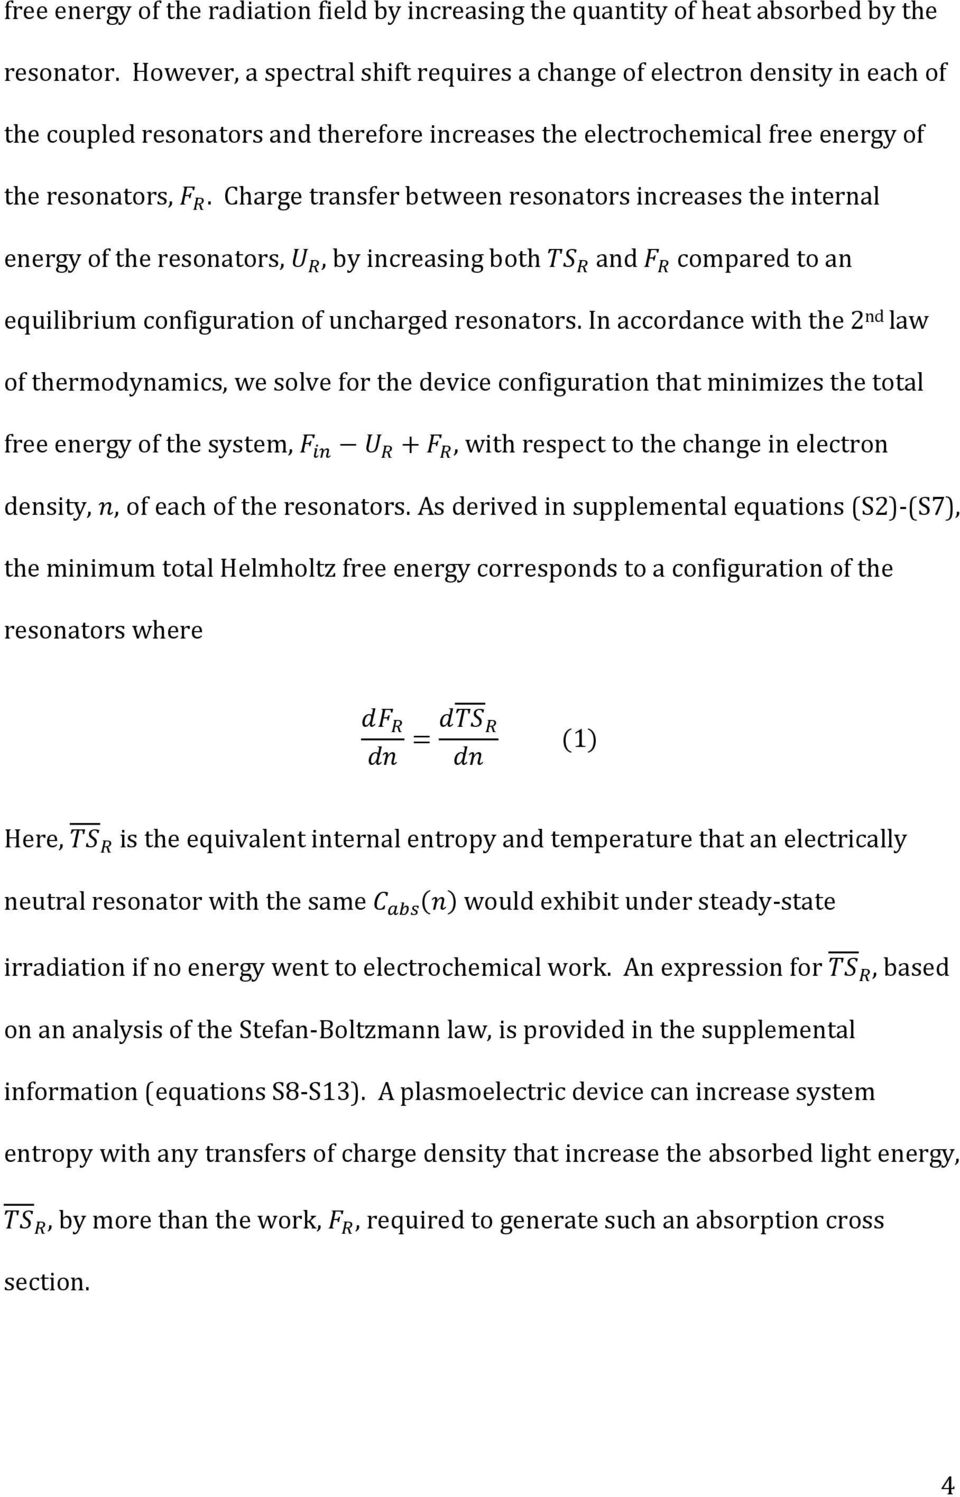 Charge transfer between resonators increases the internal energy of the resonators, U R, by increasing both TS R and F R compared to an equilibrium configuration of uncharged resonators.